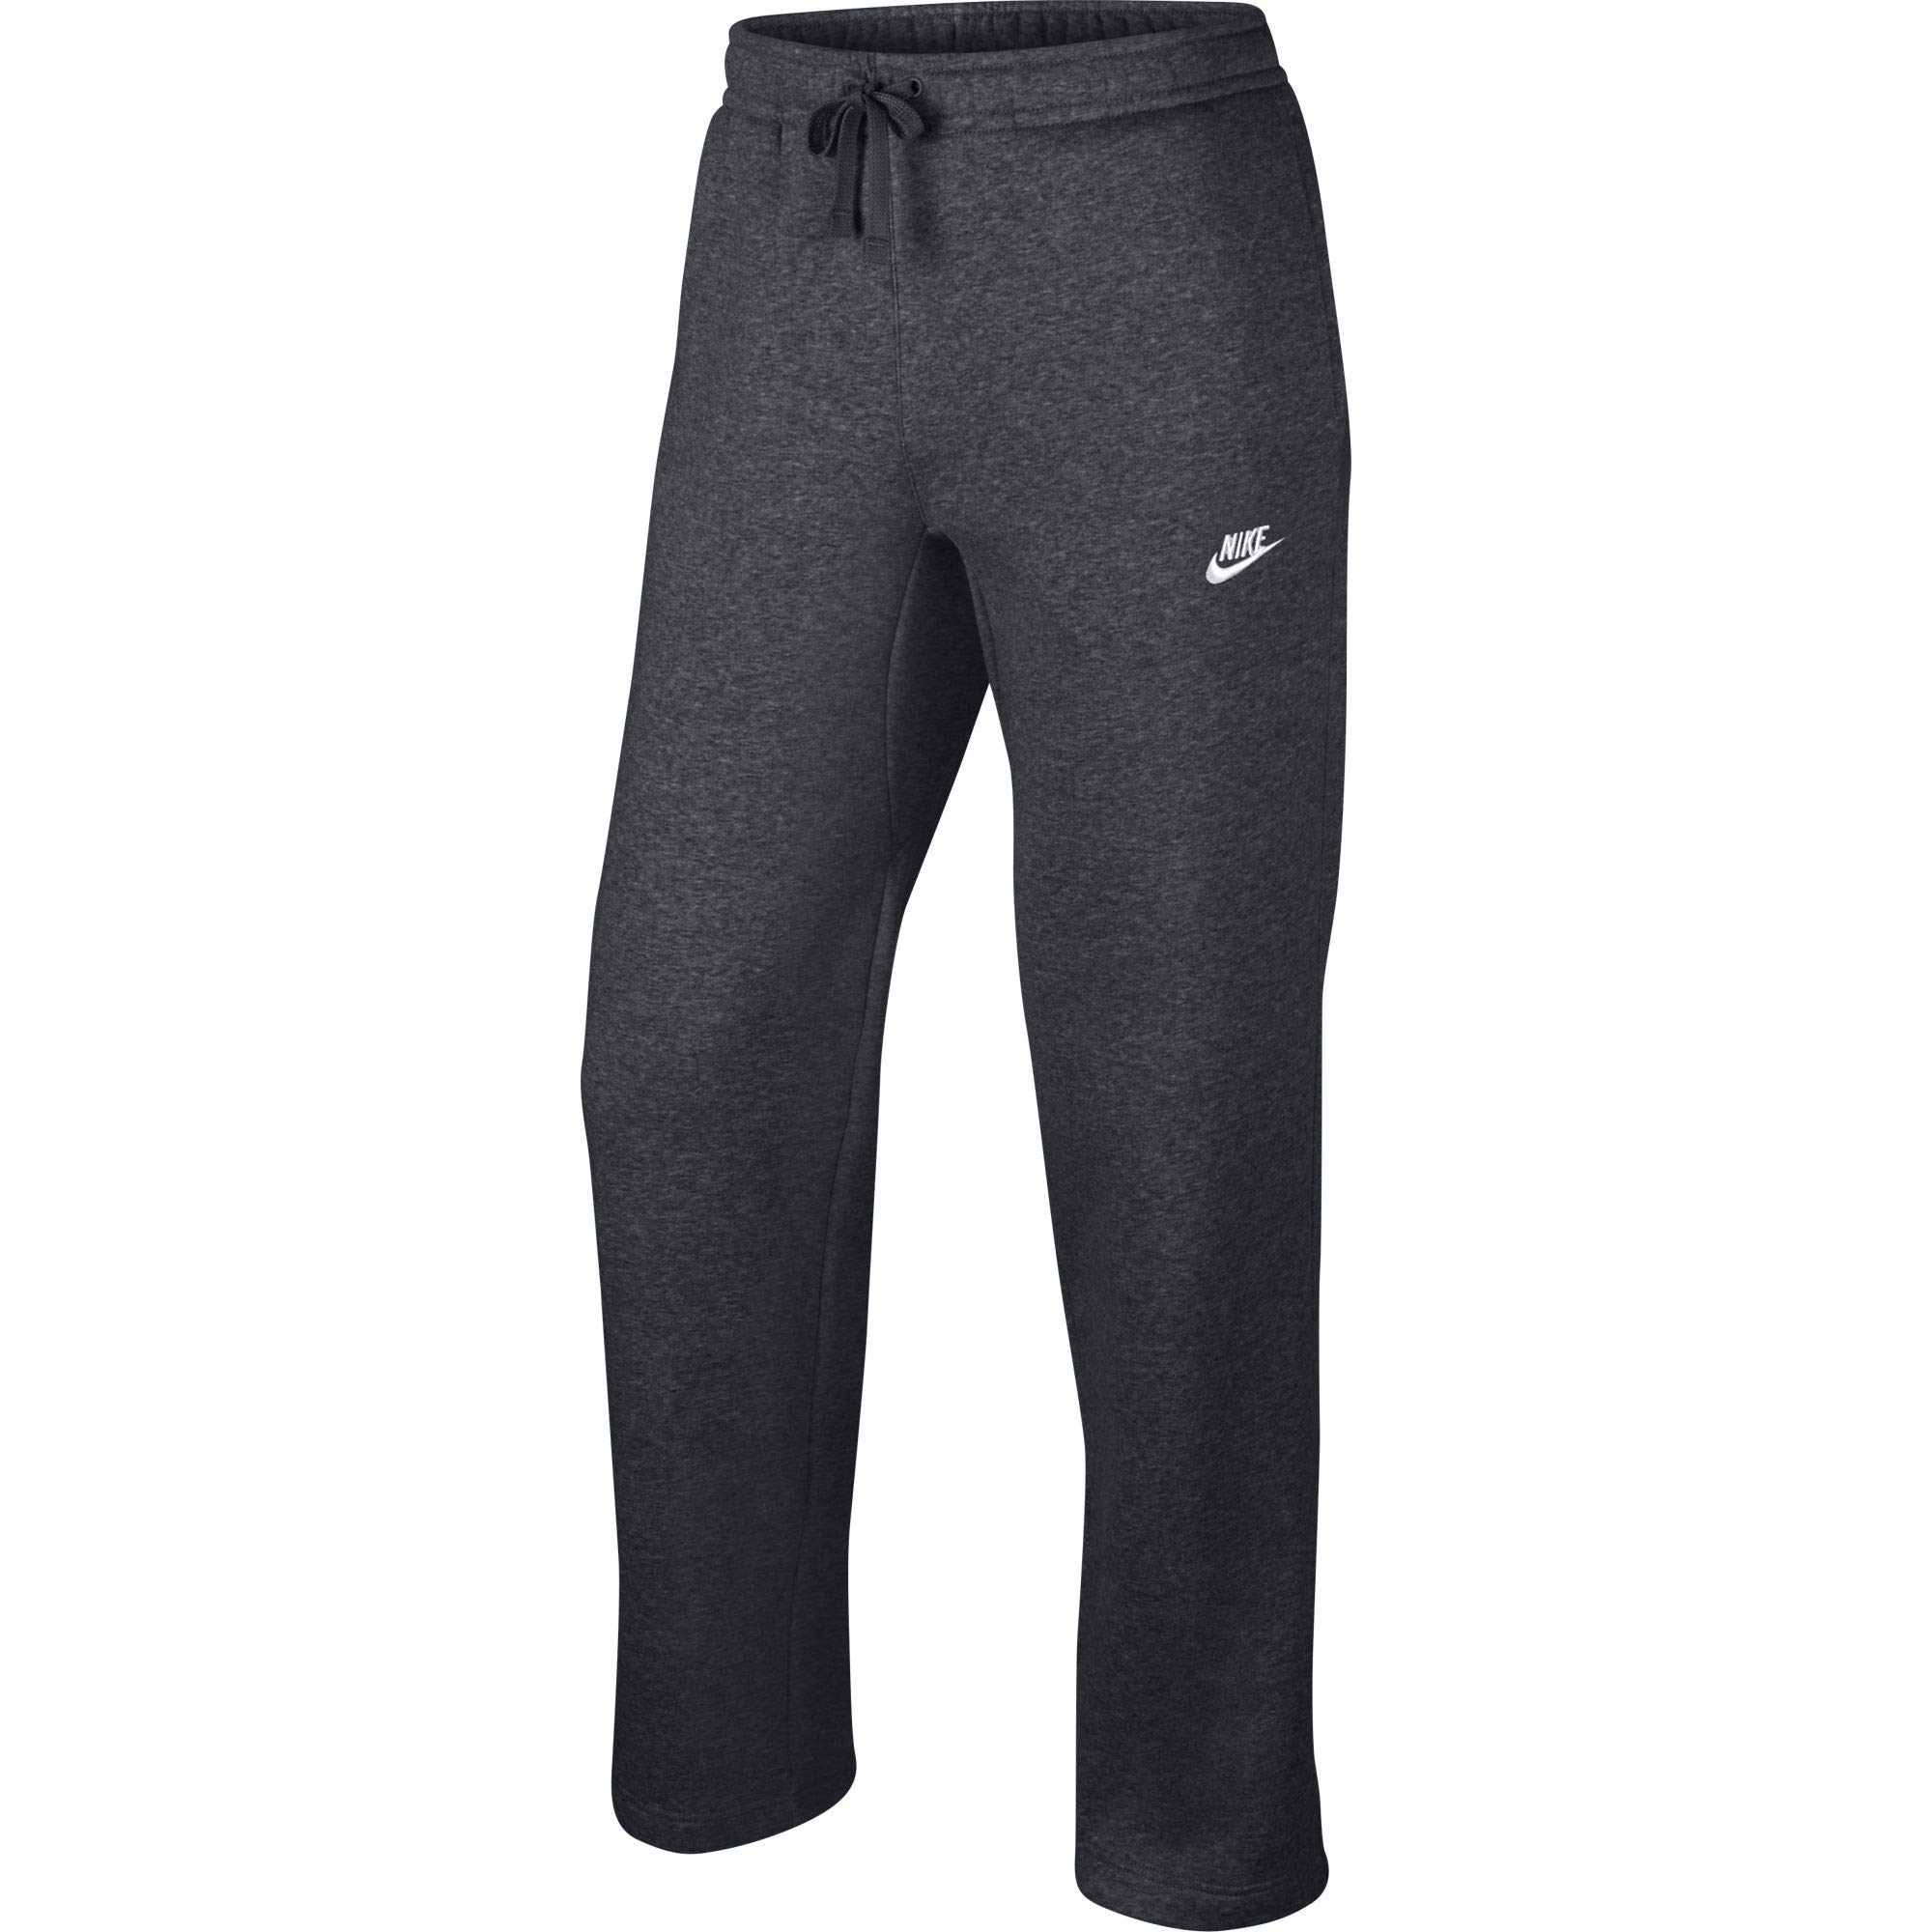 Men's Nike Sportswear Club Sweatpant, Fleece Sweatpants for Men with Pockets, Charcoal Heather/White, S by Nike (Image #4)